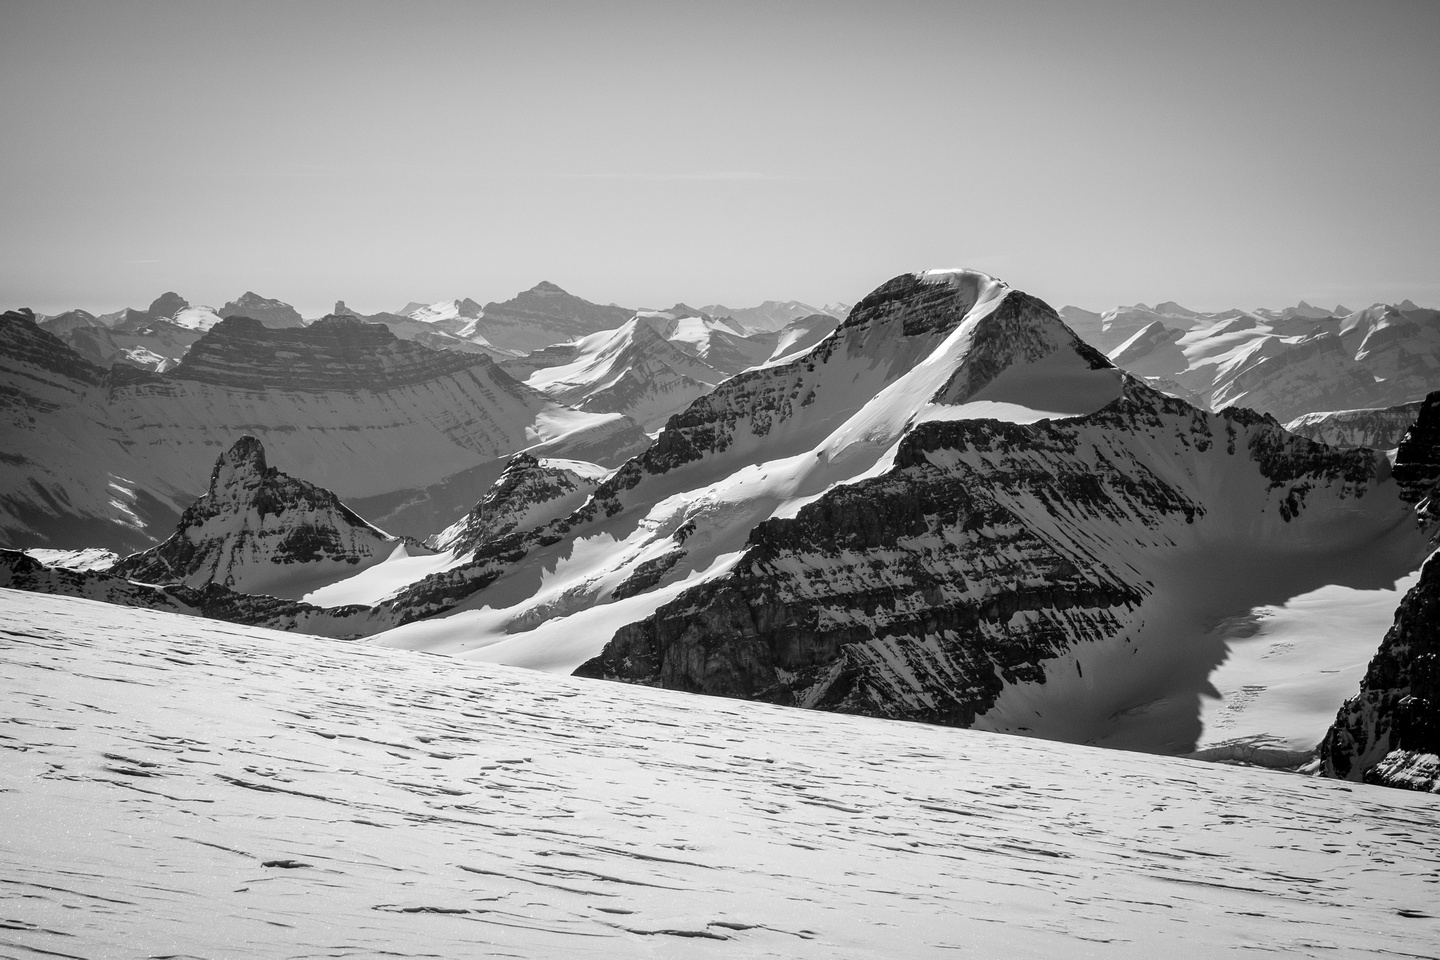 Mount Athabasca with the Silverhorn route showing ice and the AA route visible too.